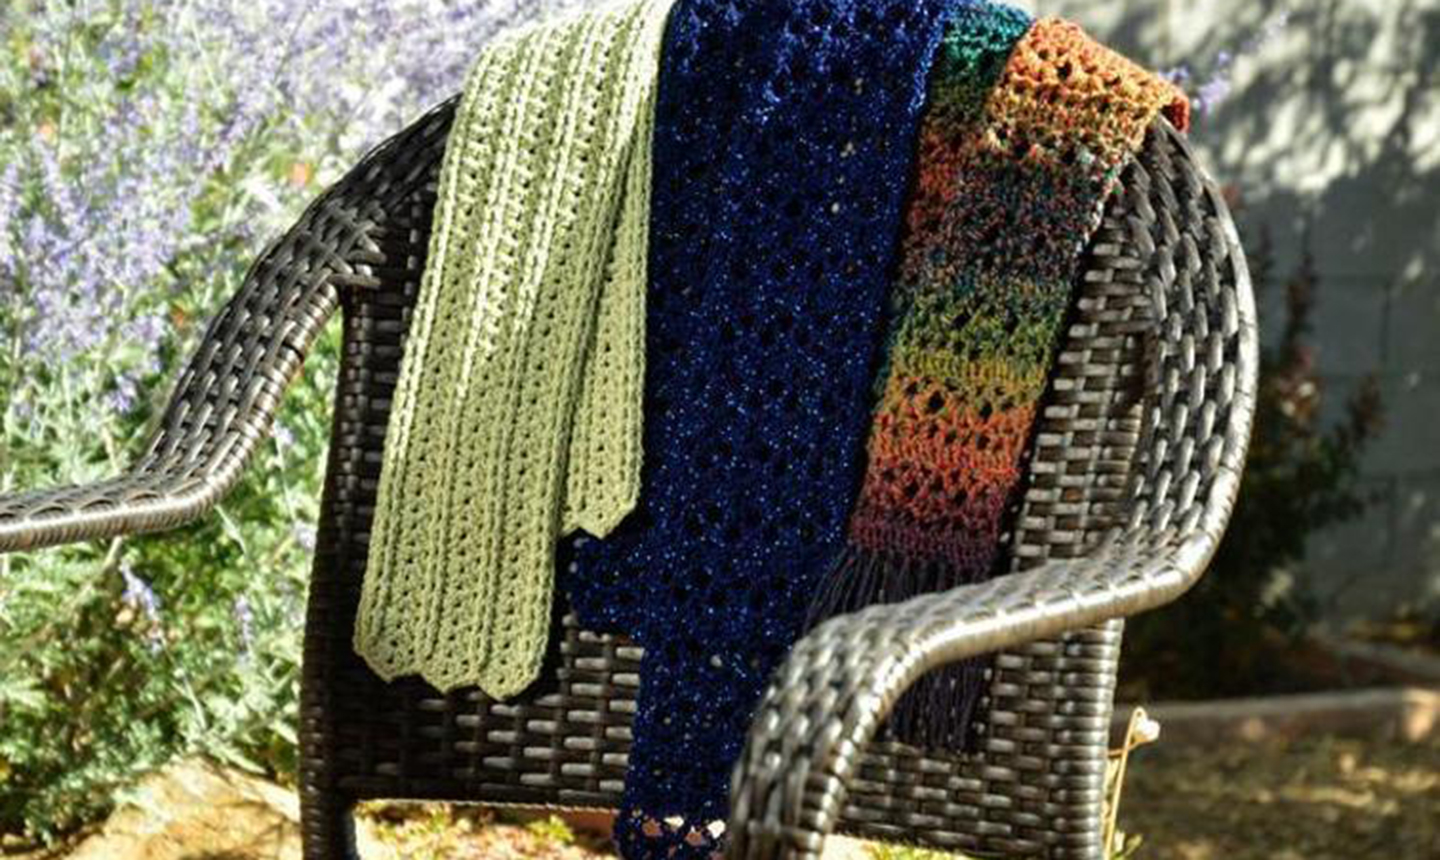 Scarves on a chair